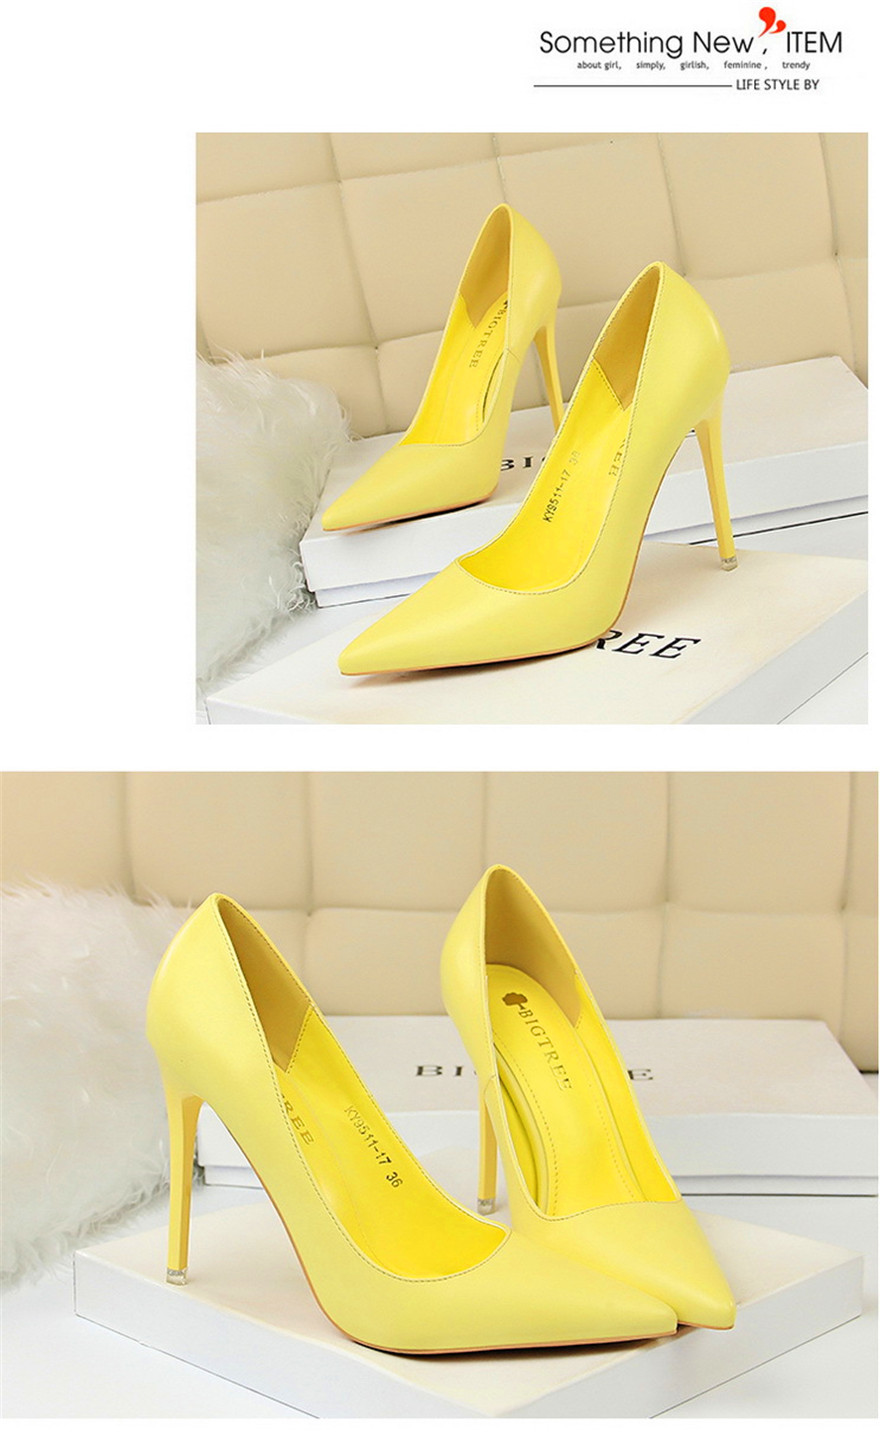 BIGTREE Soft Leather Shallow Fashion Women's High Heels Shoes Candy Colors Pointed Toe Women Pumps Show Thin Female Office Shoe 8